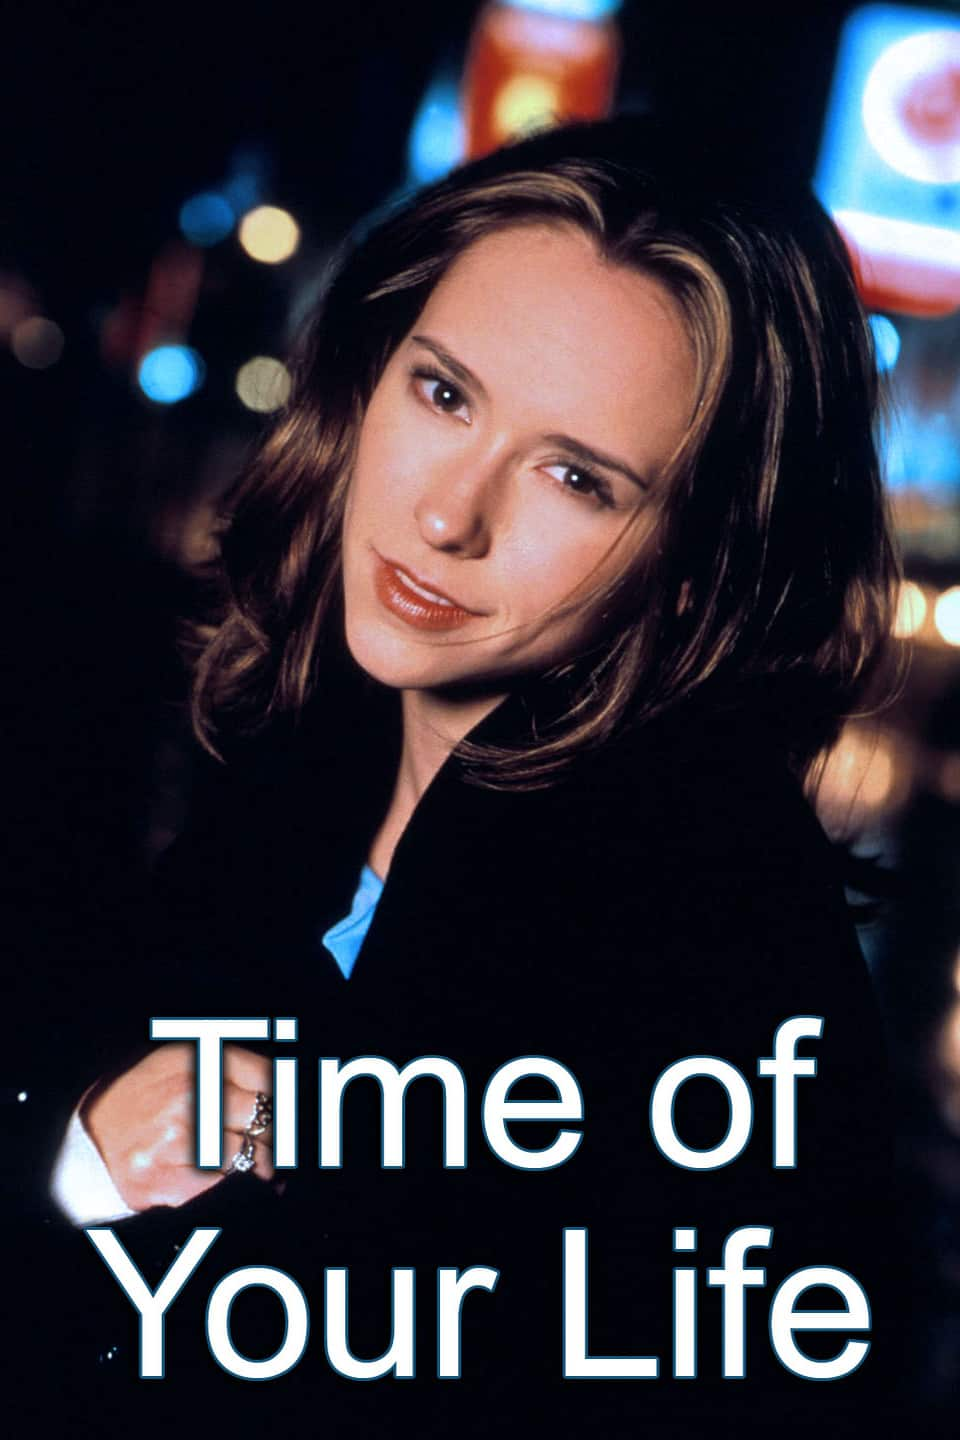 Time of Your Life, 1999